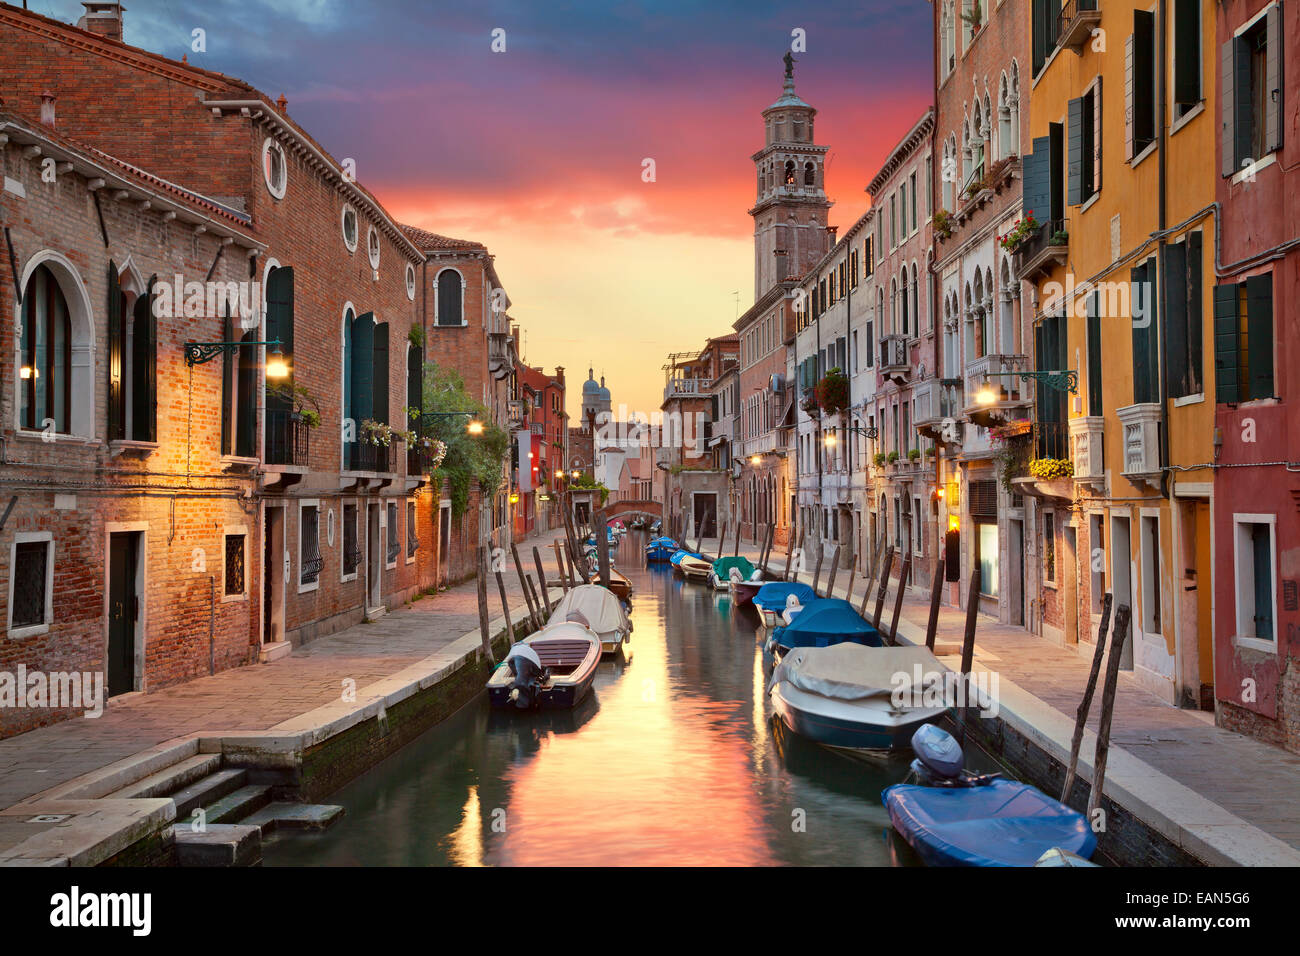 One of many narrow canals in Venice during beautiful sunset. - Stock Image